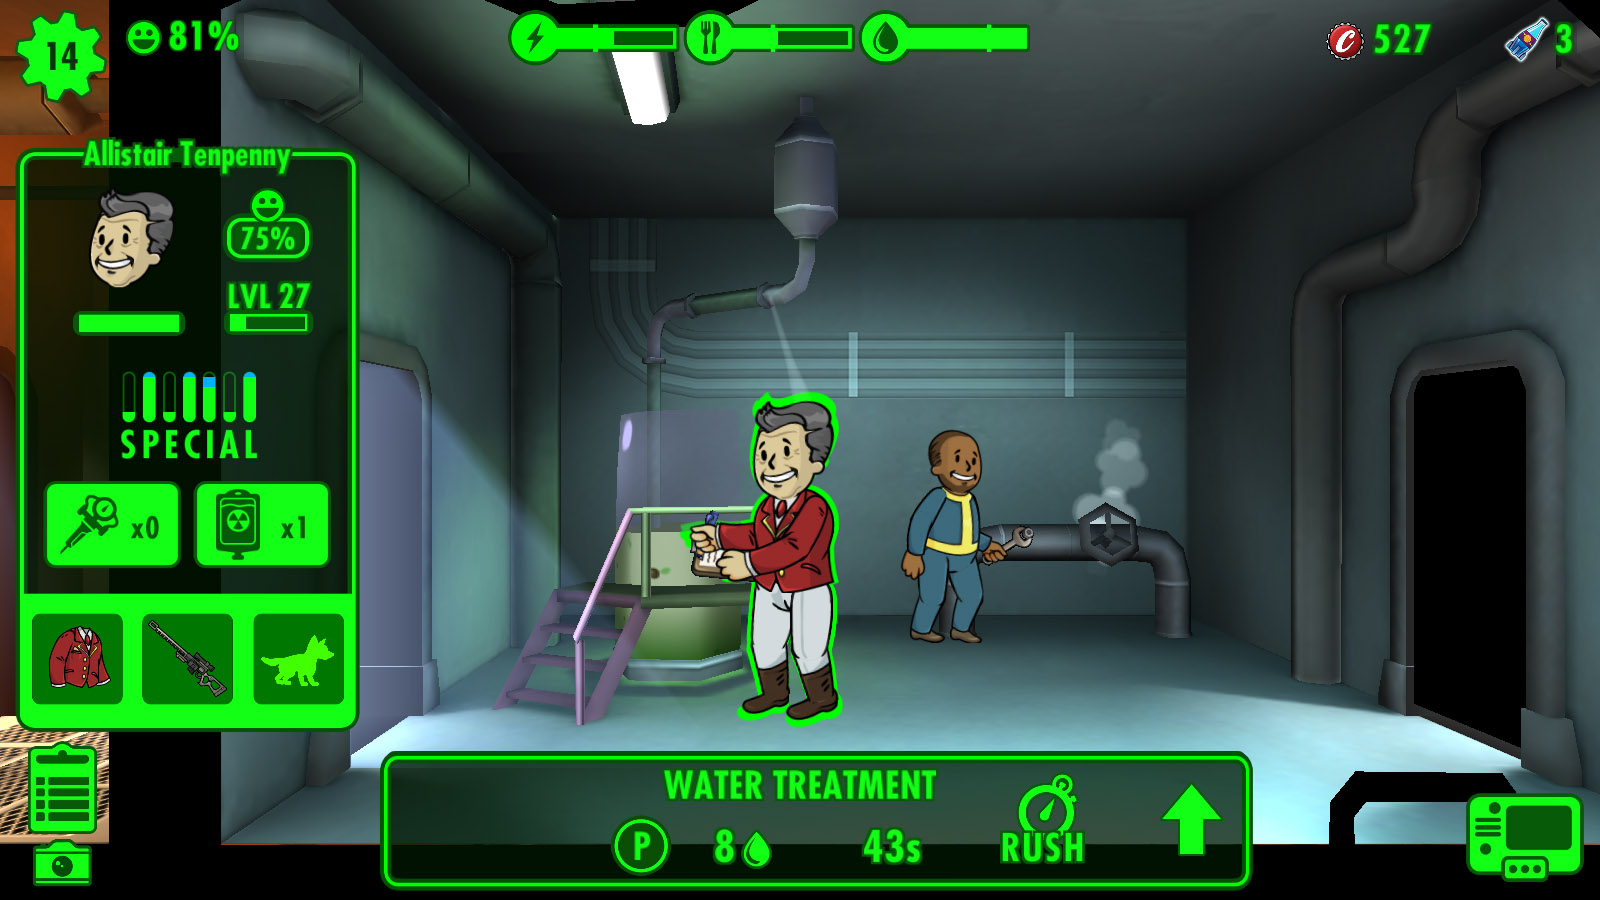 Fallout Shelter (PC) review: Vault-Tec now on PC - Gearburn